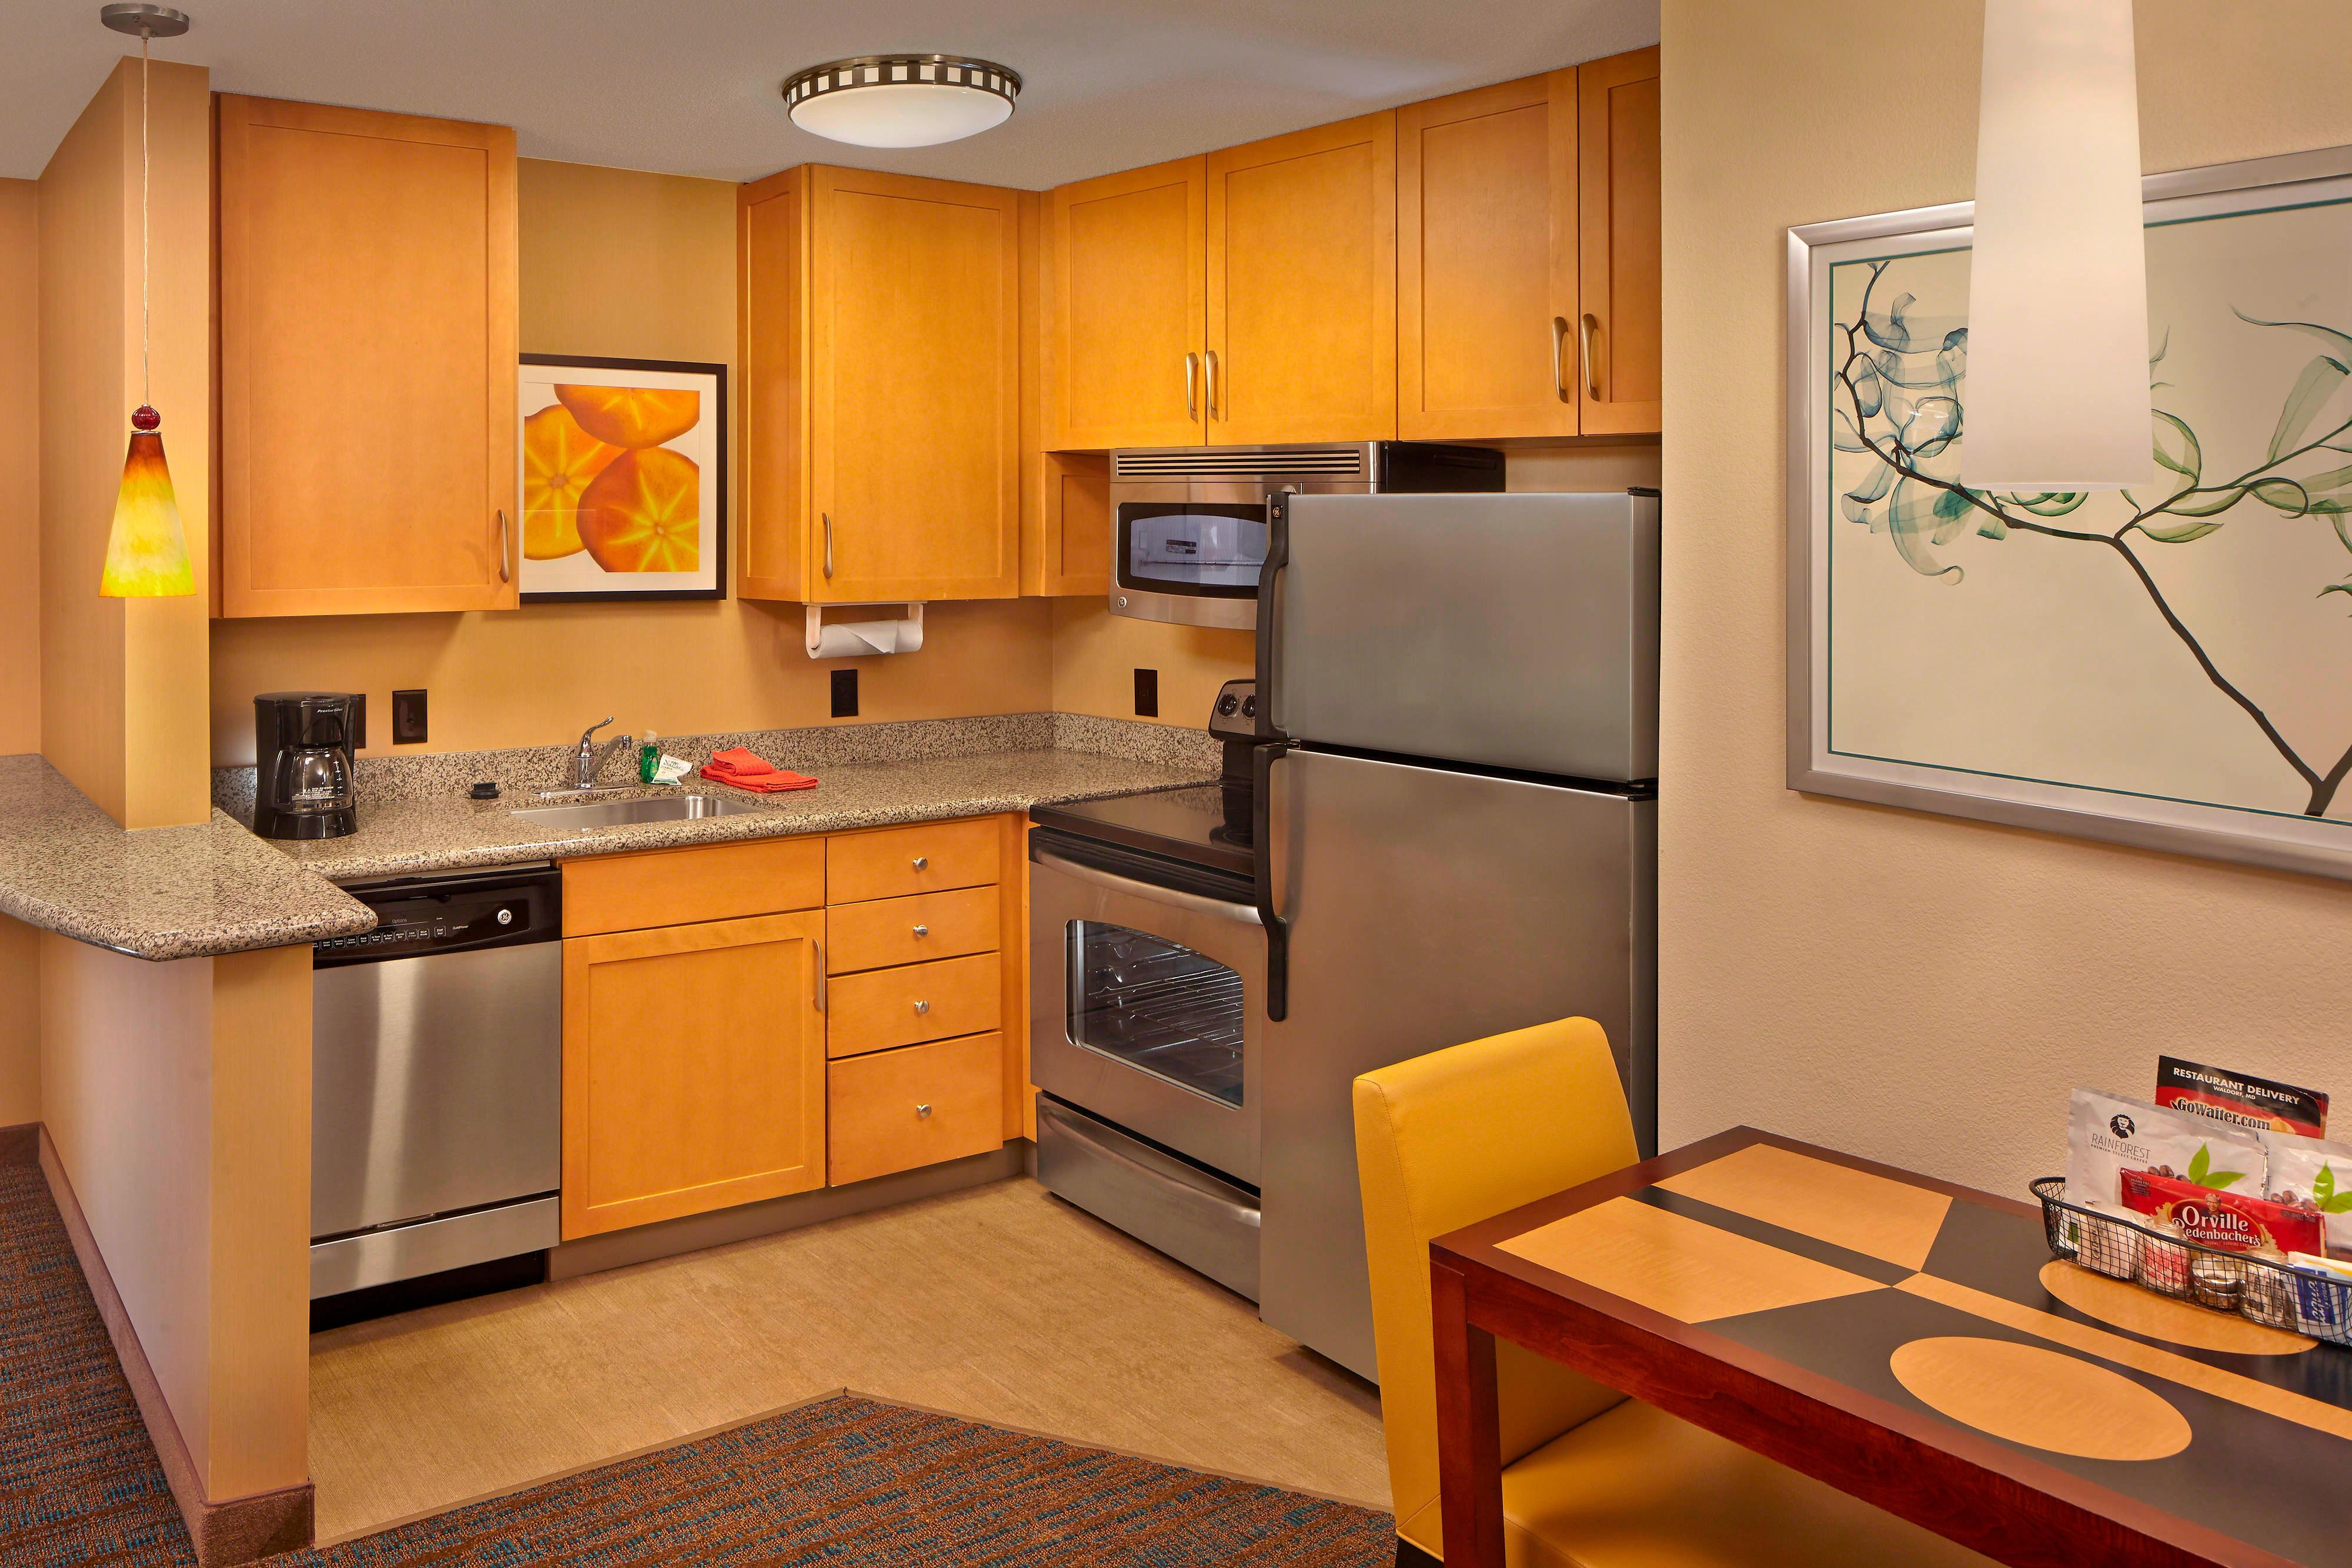 boutique cheap kitchens beach of hotel with hotels untitled kitchen ppi blog virginia